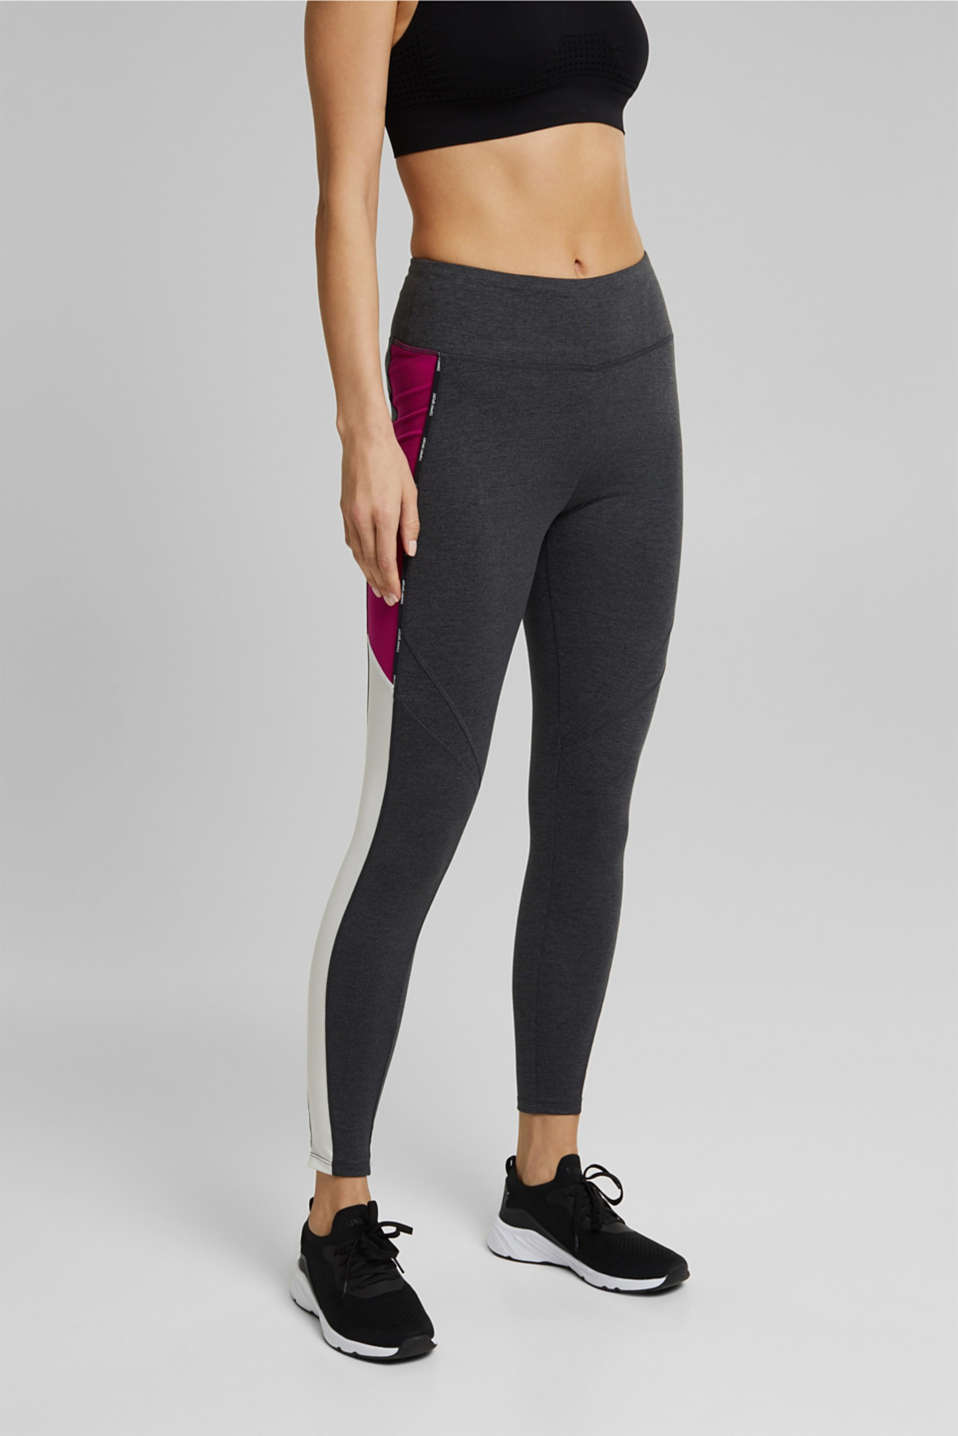 Esprit - Leggings colour blocking, E-DRY